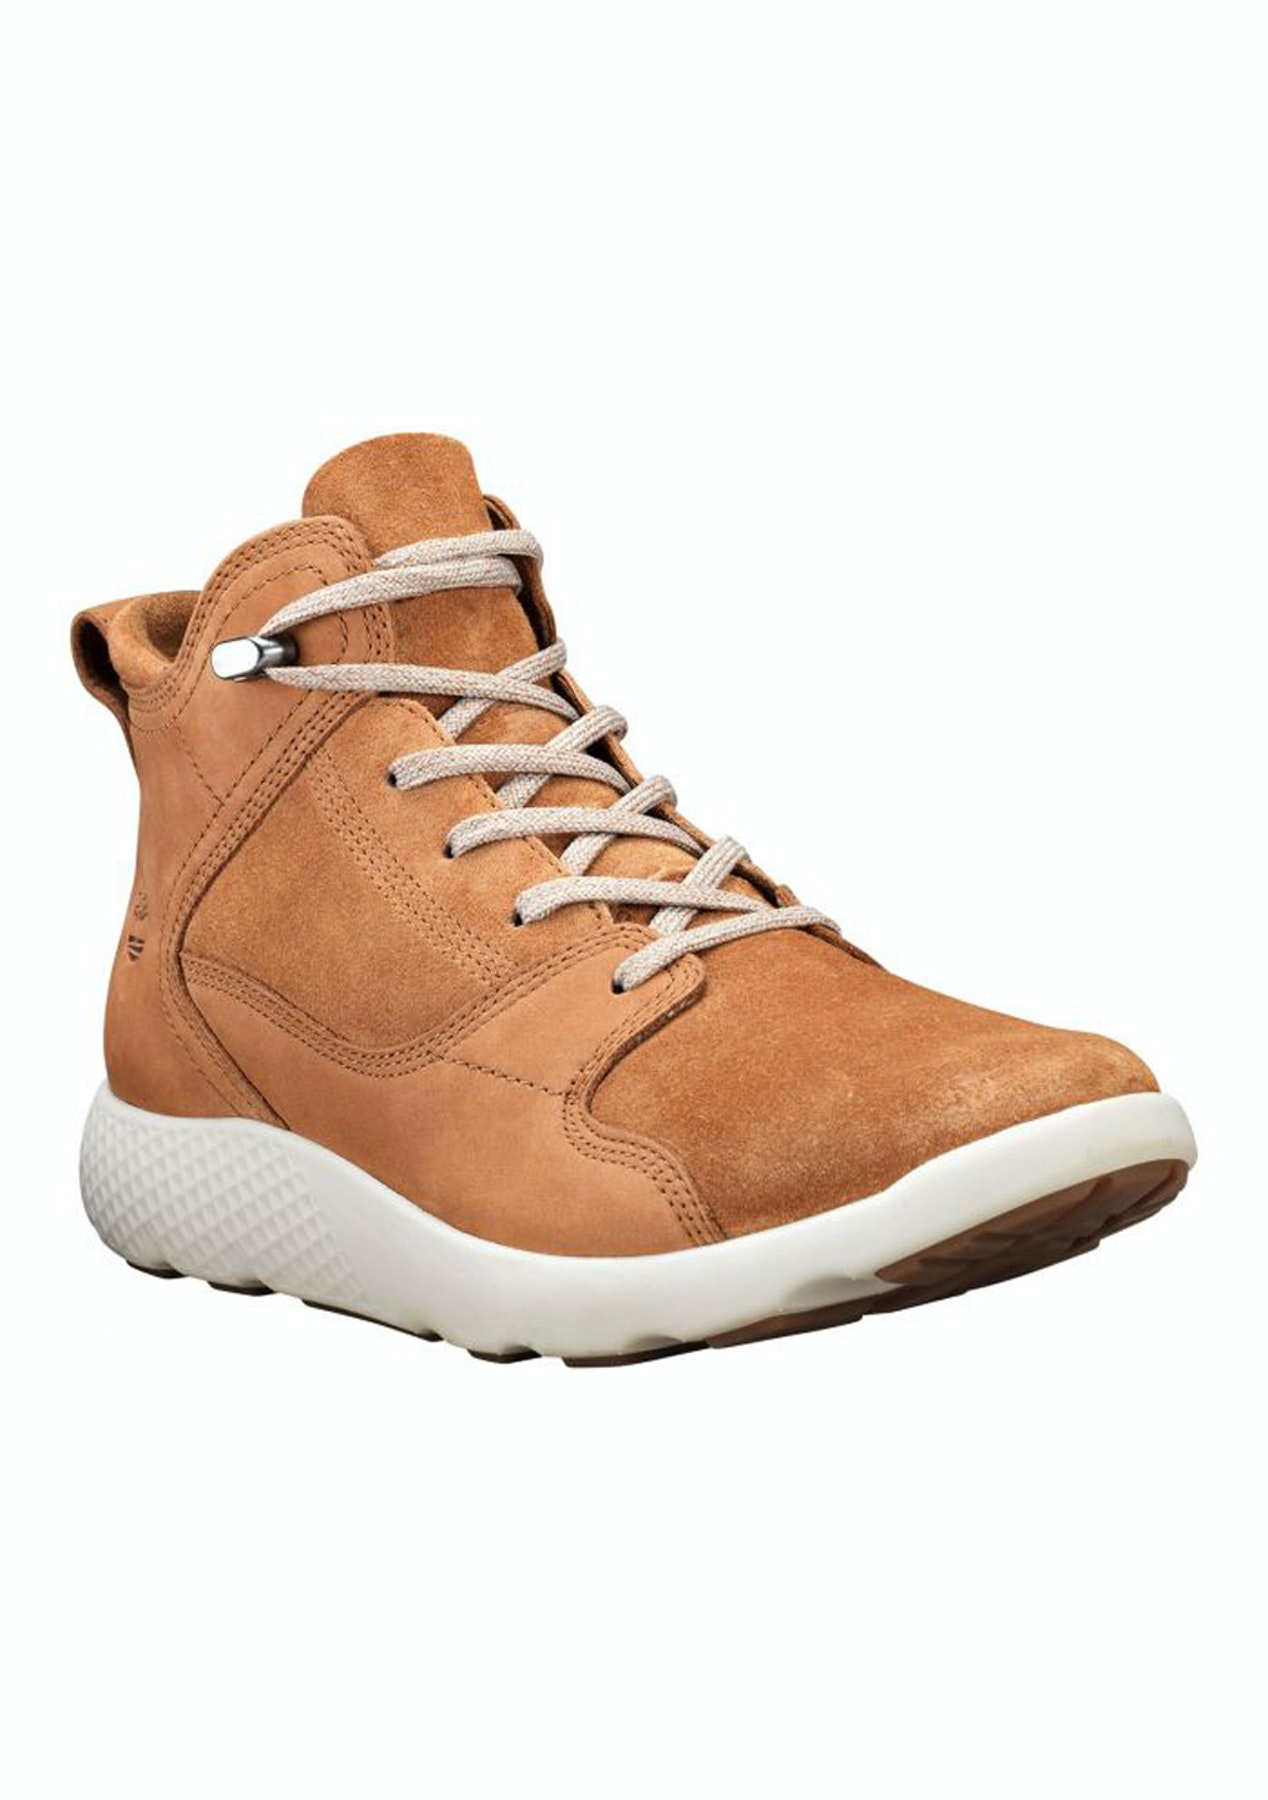 Timberland - A1SVG Mens Flyroam Leather Hiker - Wheat - Street Shoes +  Slides - Onceit cbb6c45d34